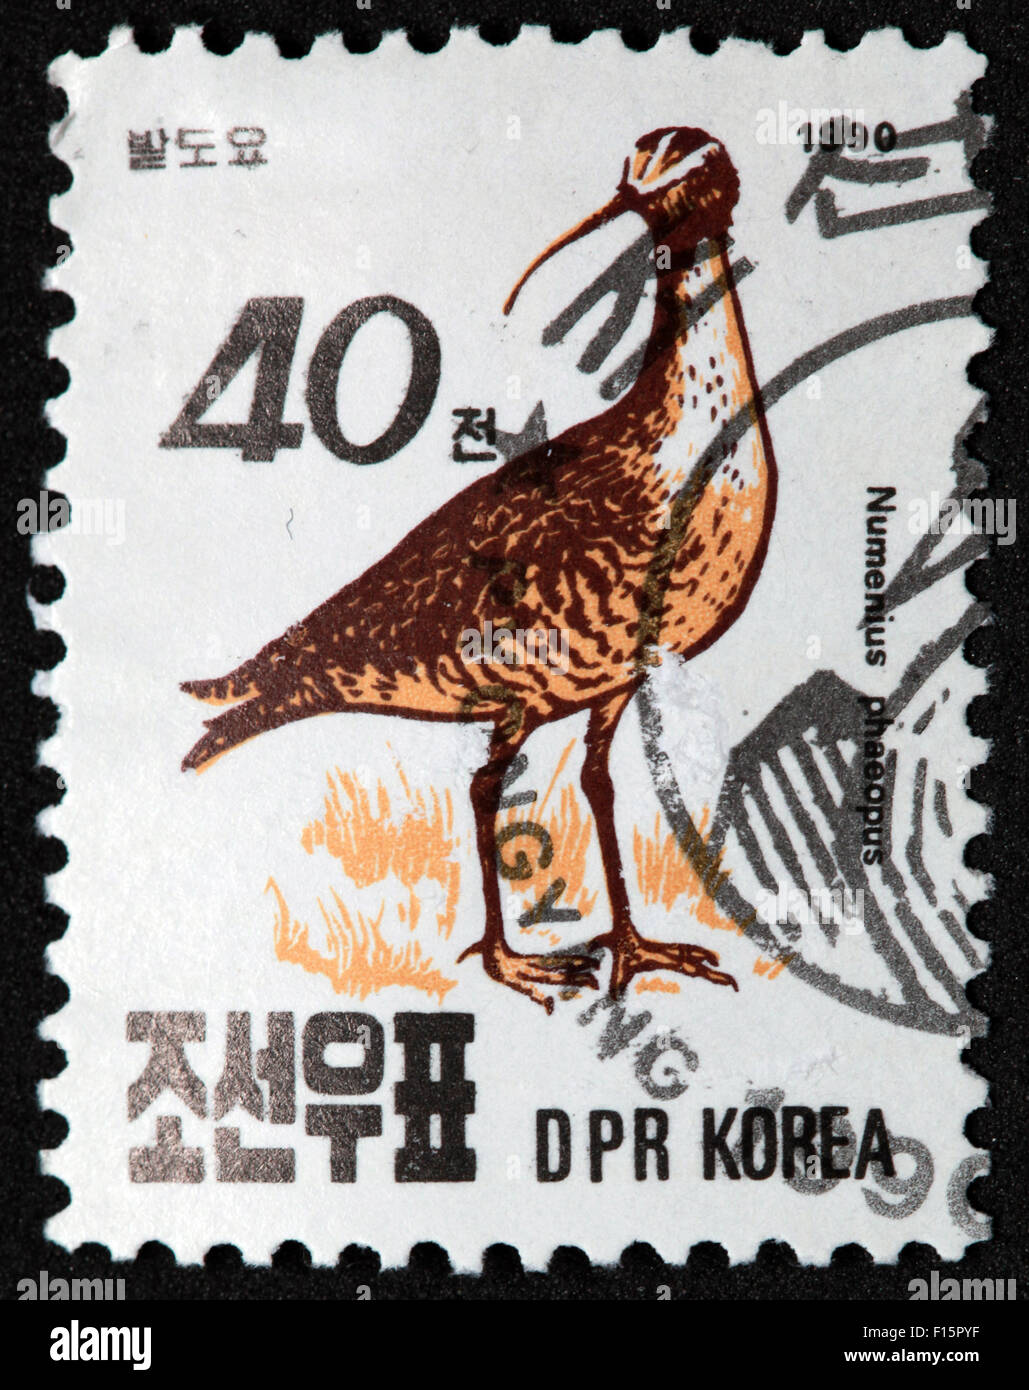 International Post,star,Used and Postmarked,Used,and,postmarked,perforated,stamp,Used,and,postmarked,Stamp,post,posting,mail,hobby,perforation,mark,postage,stamp,print,stamp,cancelled,stamp,payment,correspondence,postman,collection,collector,Korean,North,Communist,North Korea,Gotonysmith,post,posting,mail,hobby,perforation,mark,postage,stamp,print,stamp,cancelled,canceled,stamp,payment,correspondence,postman,collection,collector,philately,philatelist,letter,price,history,retro,Australian,Vintage,delivery,date,relationship,communication,Oz,Australia,DownUnder,classic rare unique Austrailian financial,investment,invest,value,British,empire,nation,canceled,printed on black background,close-up,closeup,close,up,sent,send,philately,mailing,shipping,postoffice,office,isolated,circa,special,colour,color,postmarked,marked,airmail,aged,antique,retro,cutting,historic,old,stamps,collection,stamp collection,album,Timbre,Sello,Stempel,Selo,Buy Pictures of,Buy Images Of,Down Under,Black background